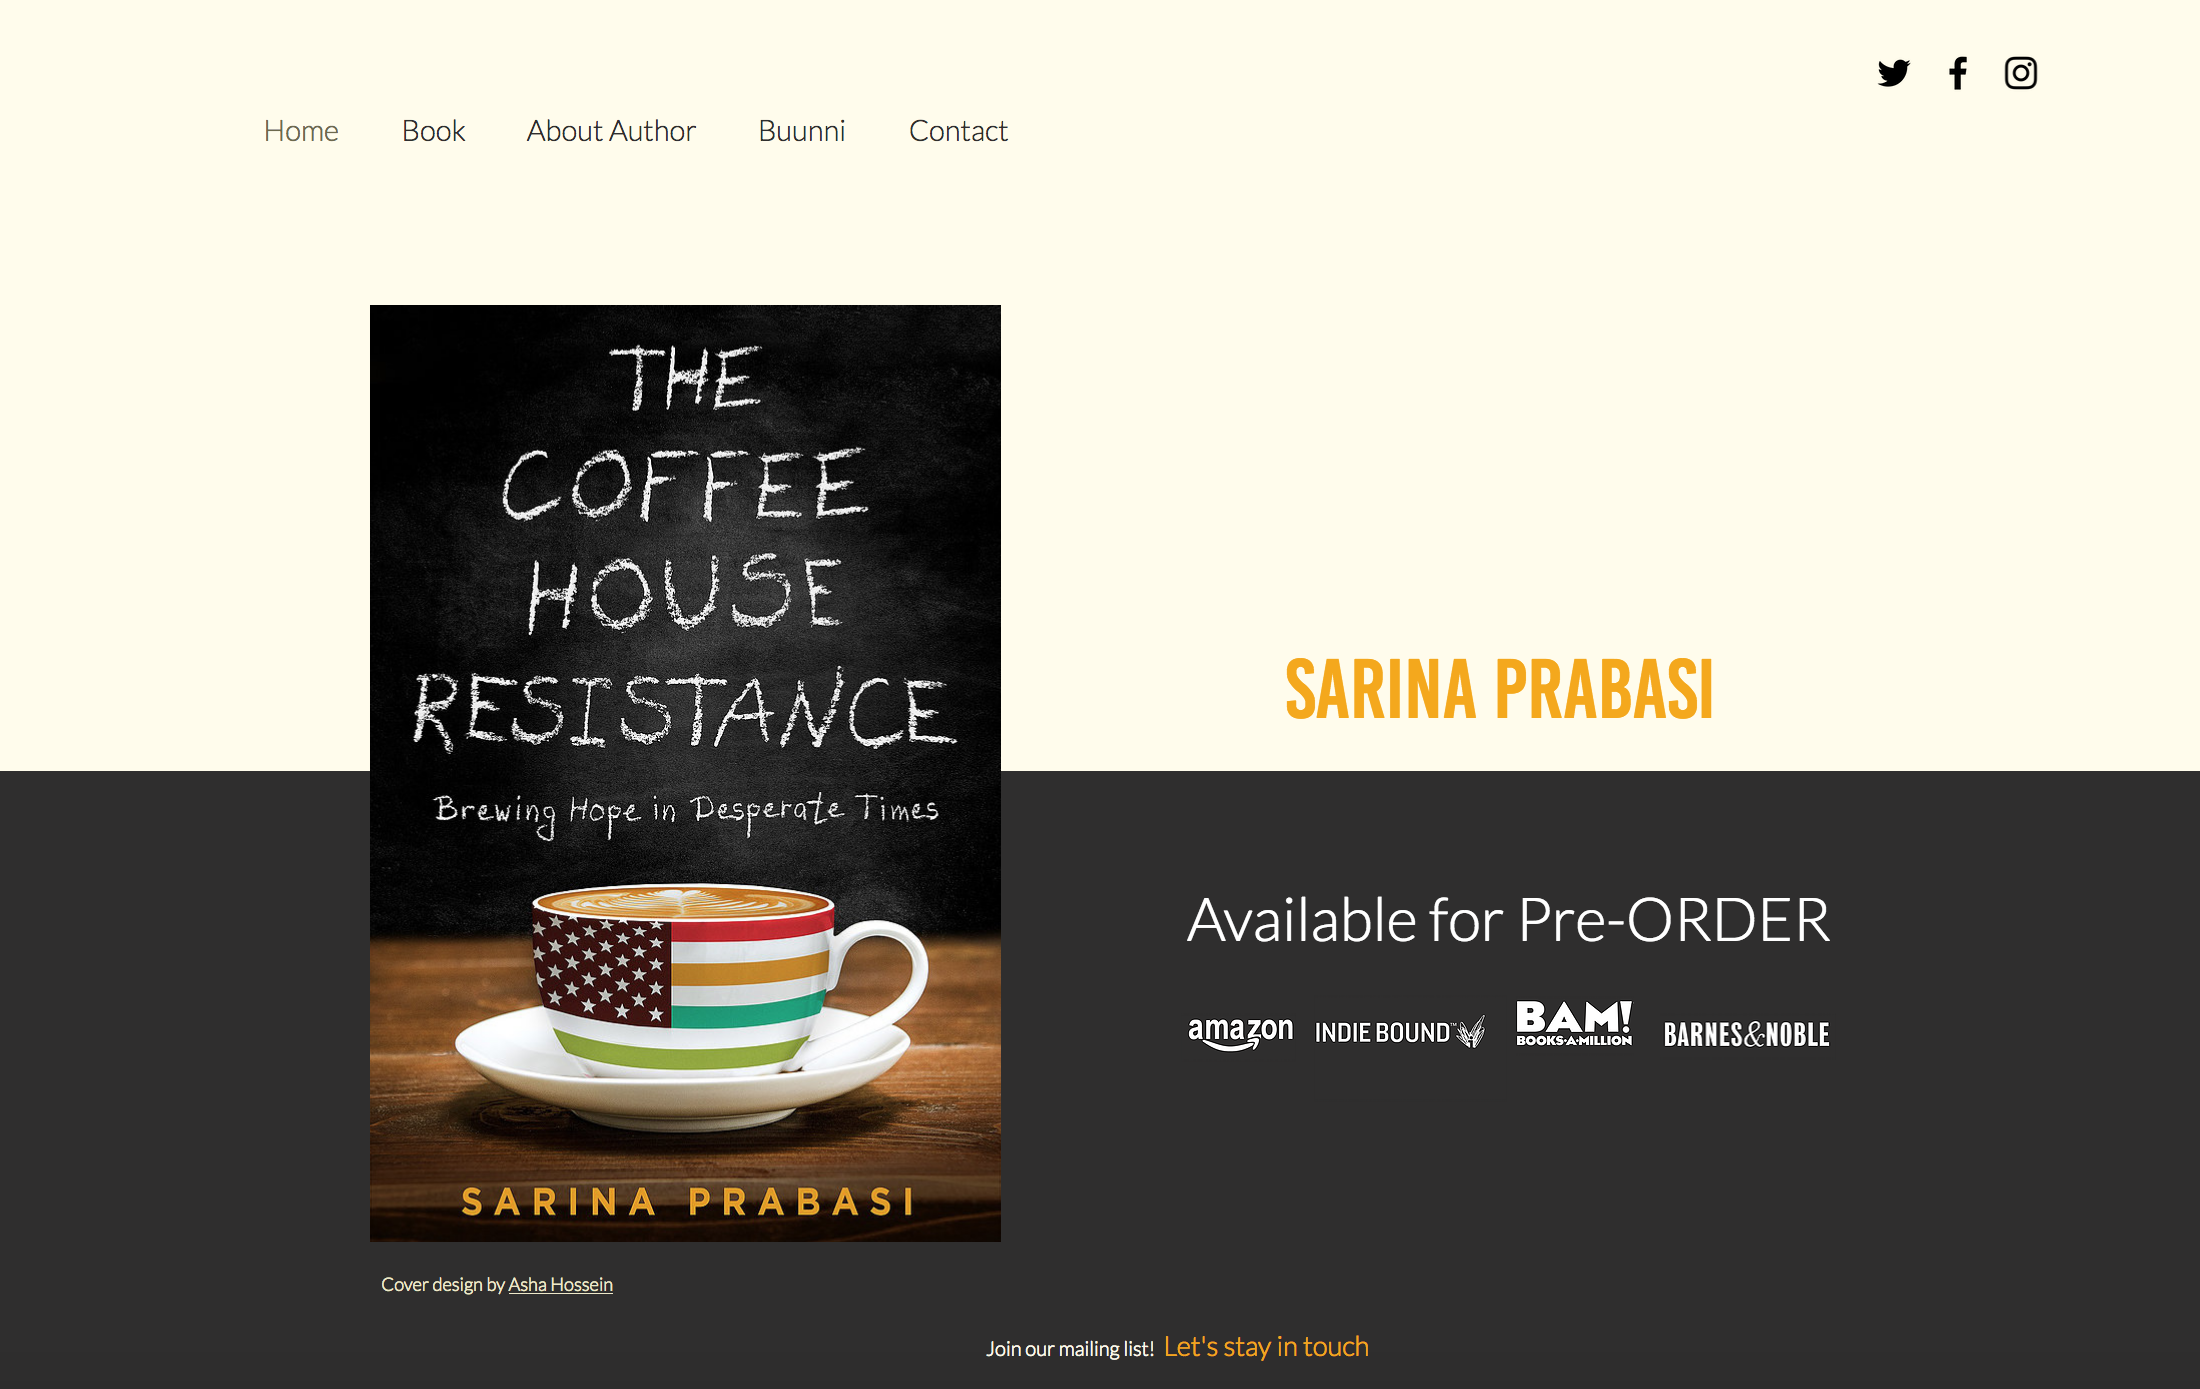 Sarina Prabasi - Author The Coffee House Resistance